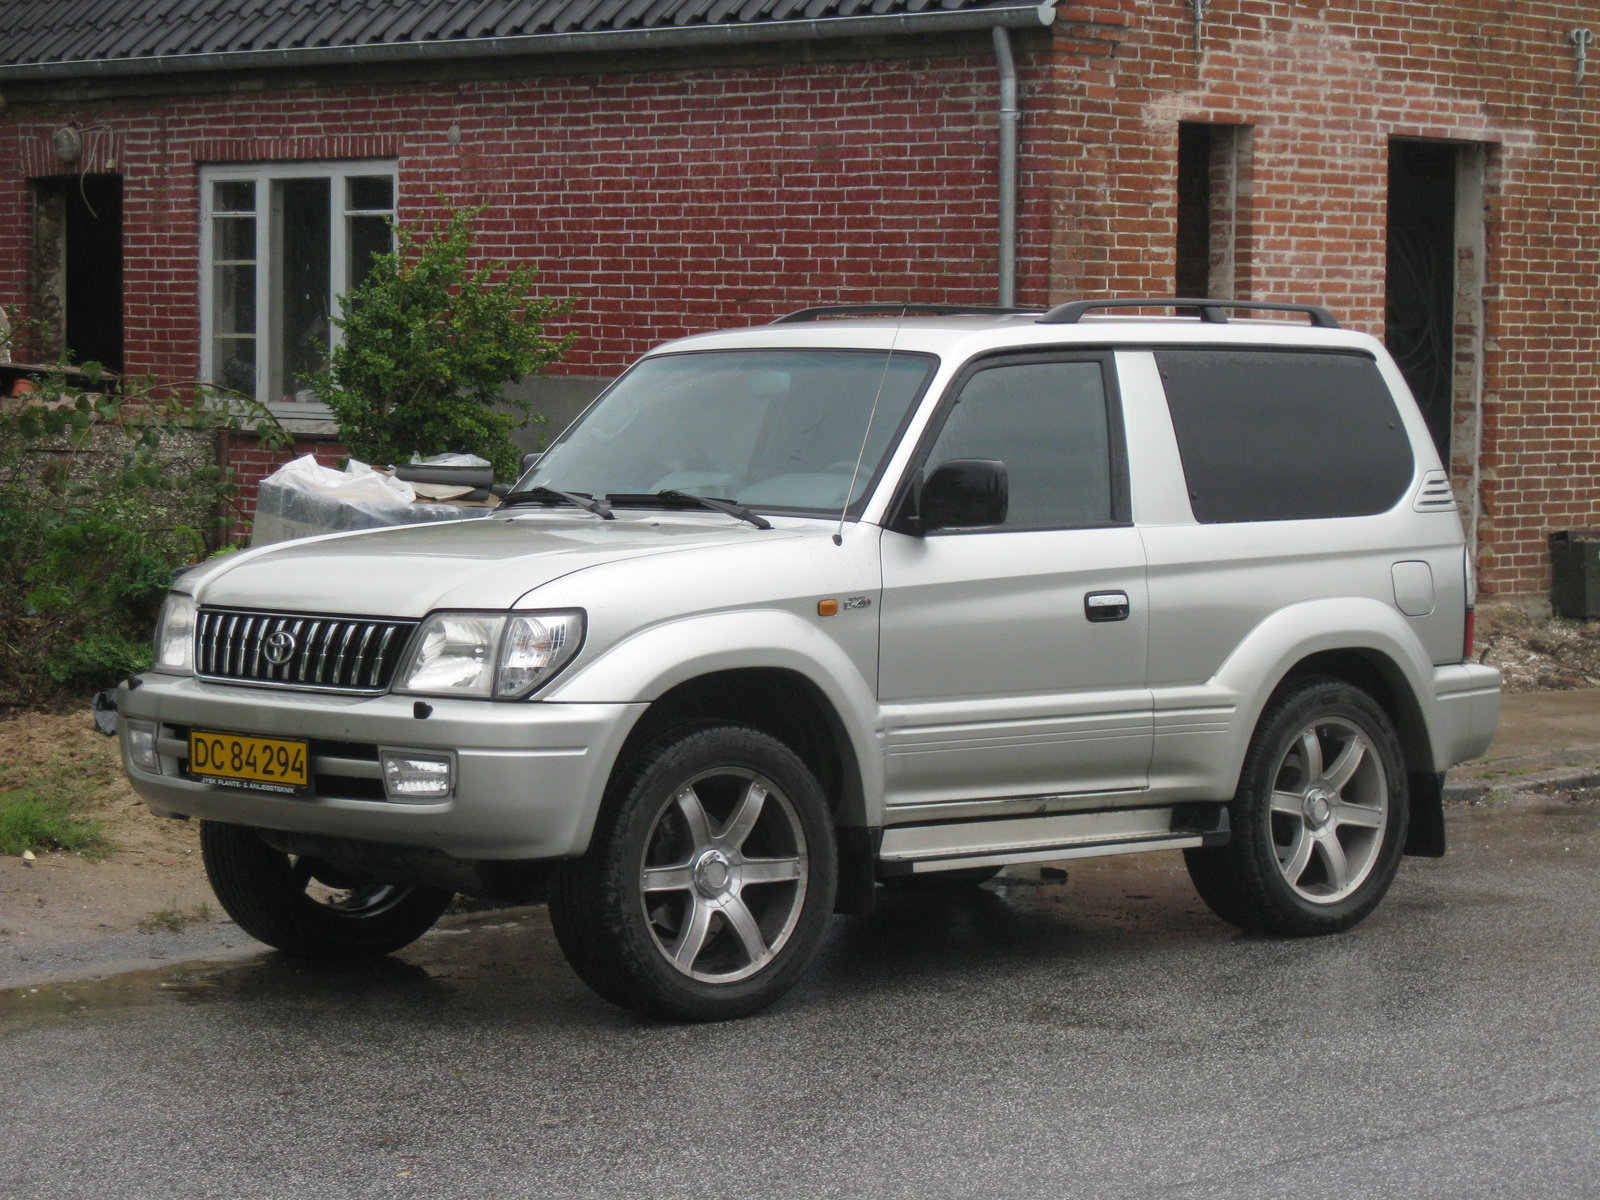 2002 Toyota Land Cruiser picture